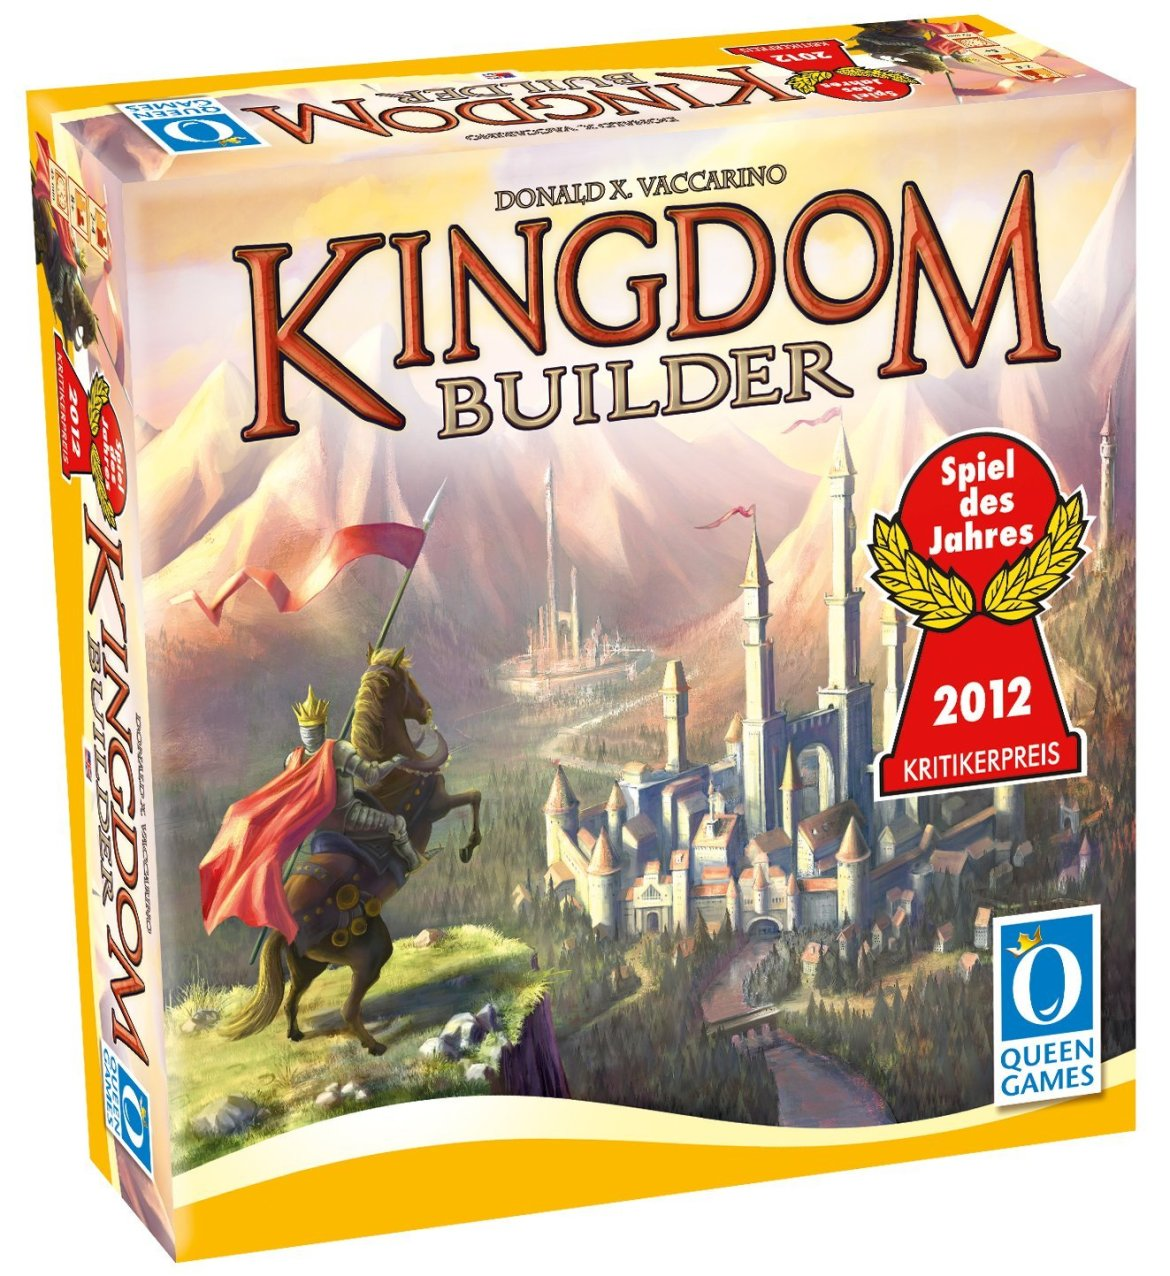 Board Games are 25% off at Amazon today